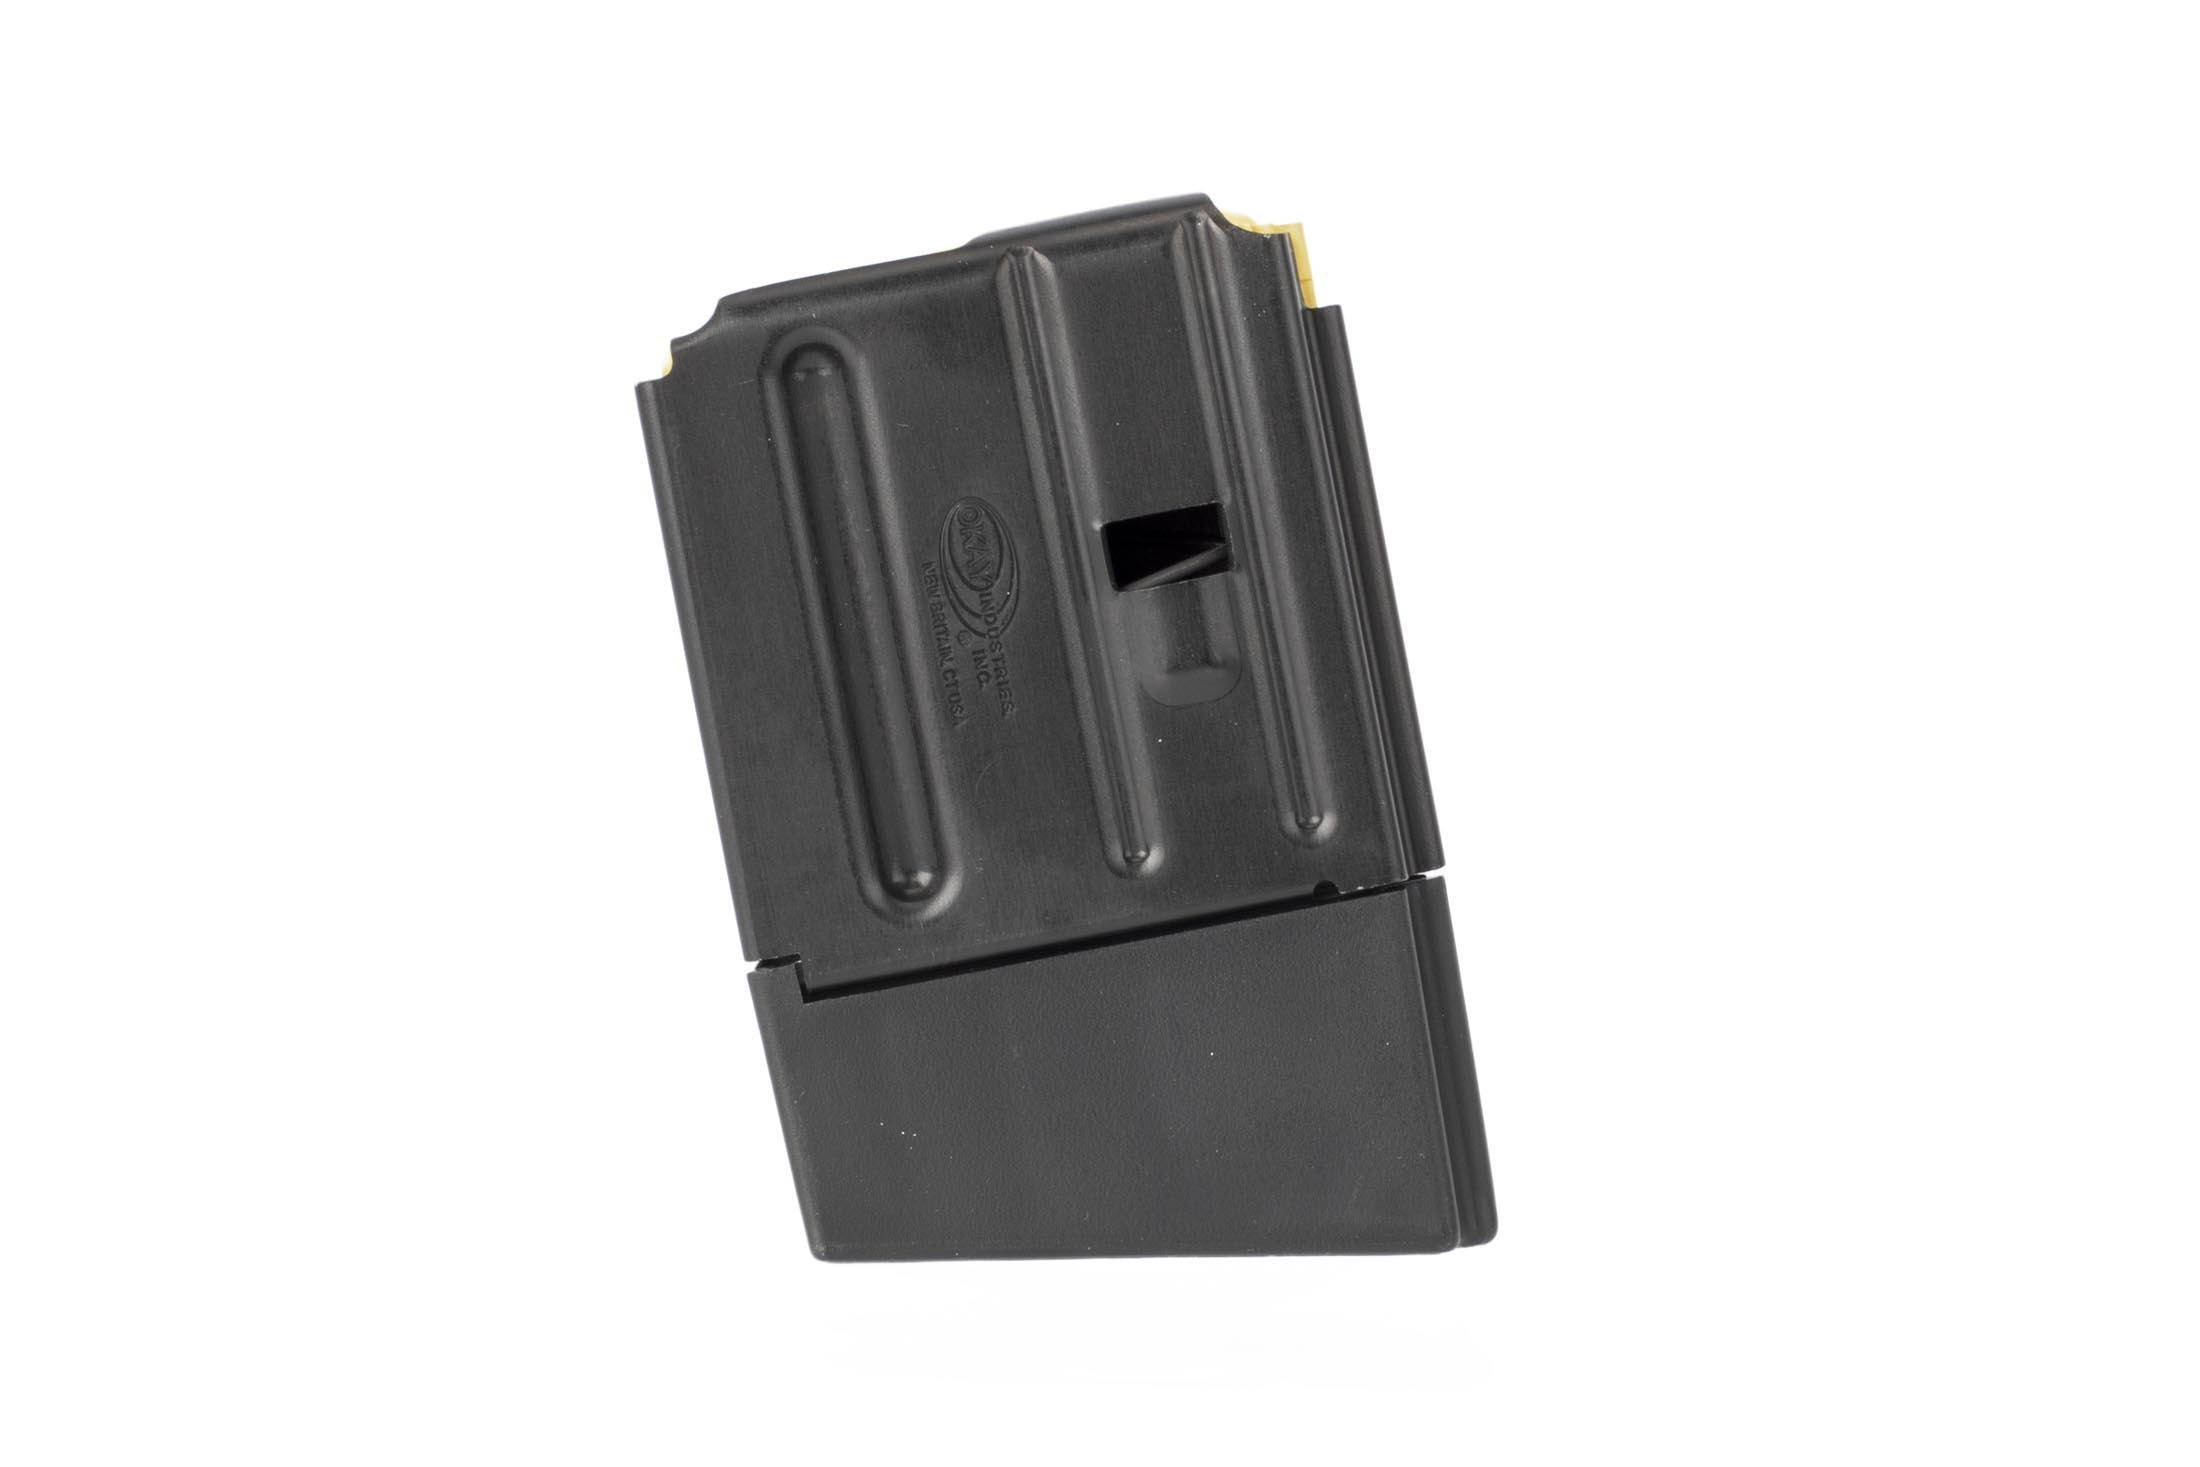 Okay Industries lightweight aluminum SureFreed 5.56 magazine holds 10 rounds of ammo and features a durable black finish